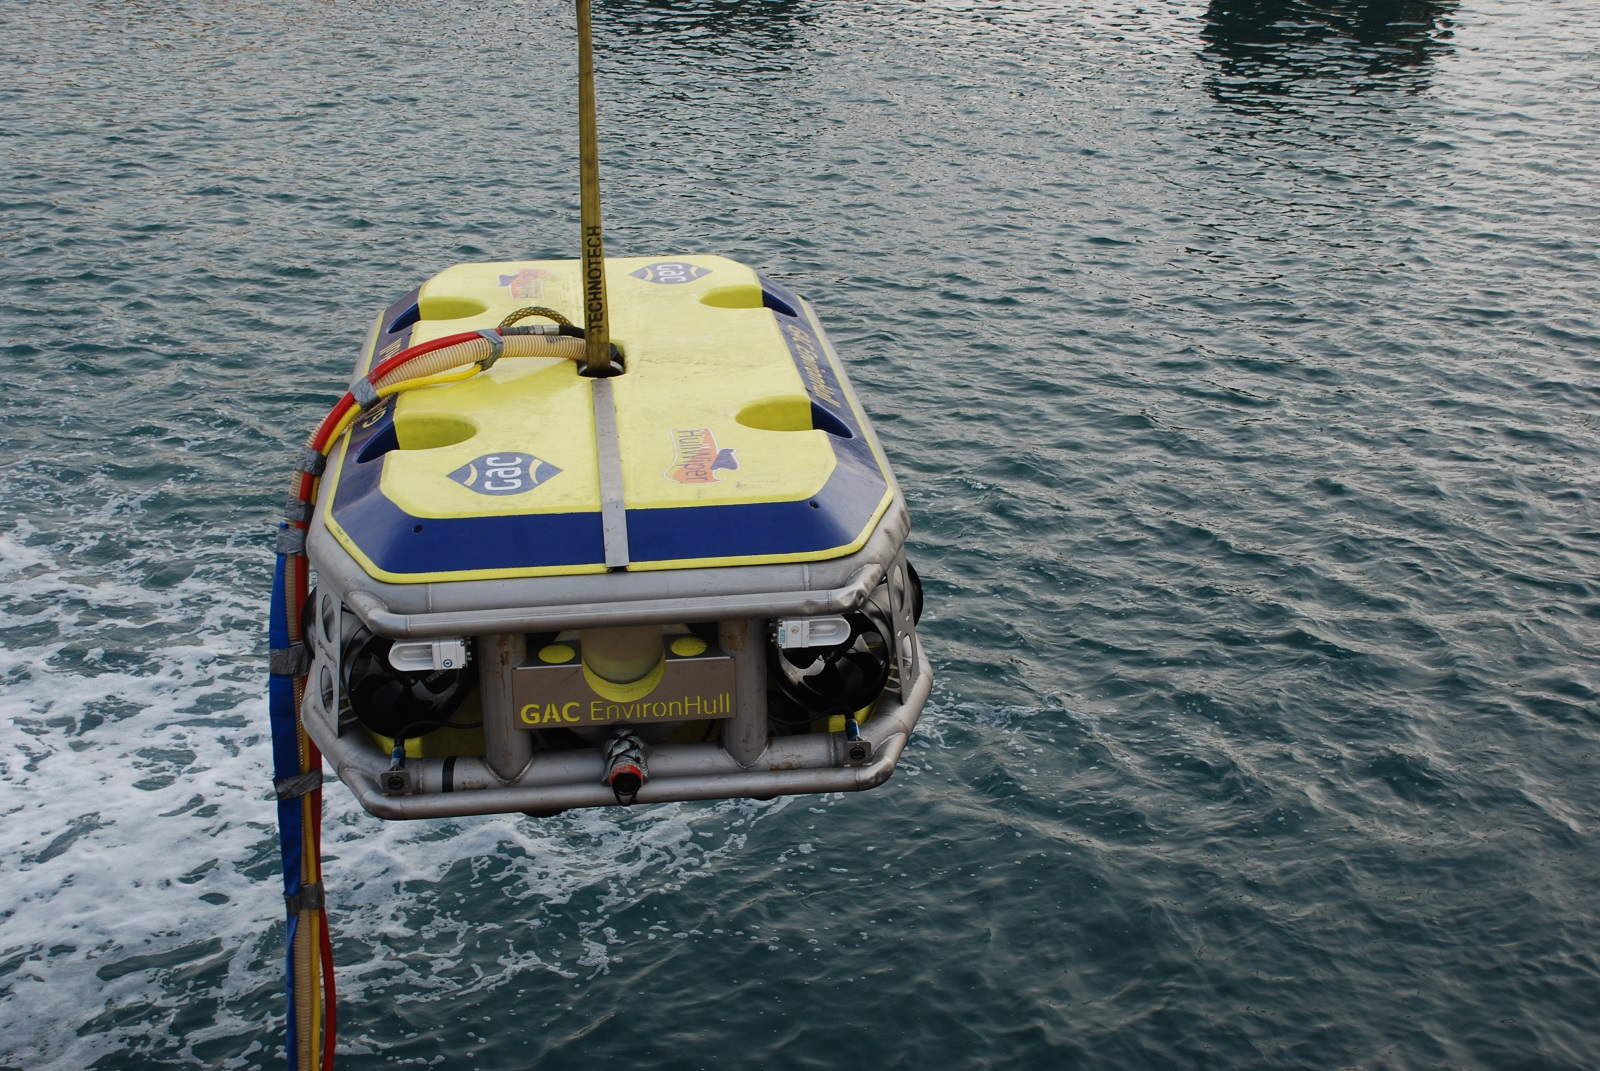 Port of Sohar to use GAC EnvironHull underwater cleaning system